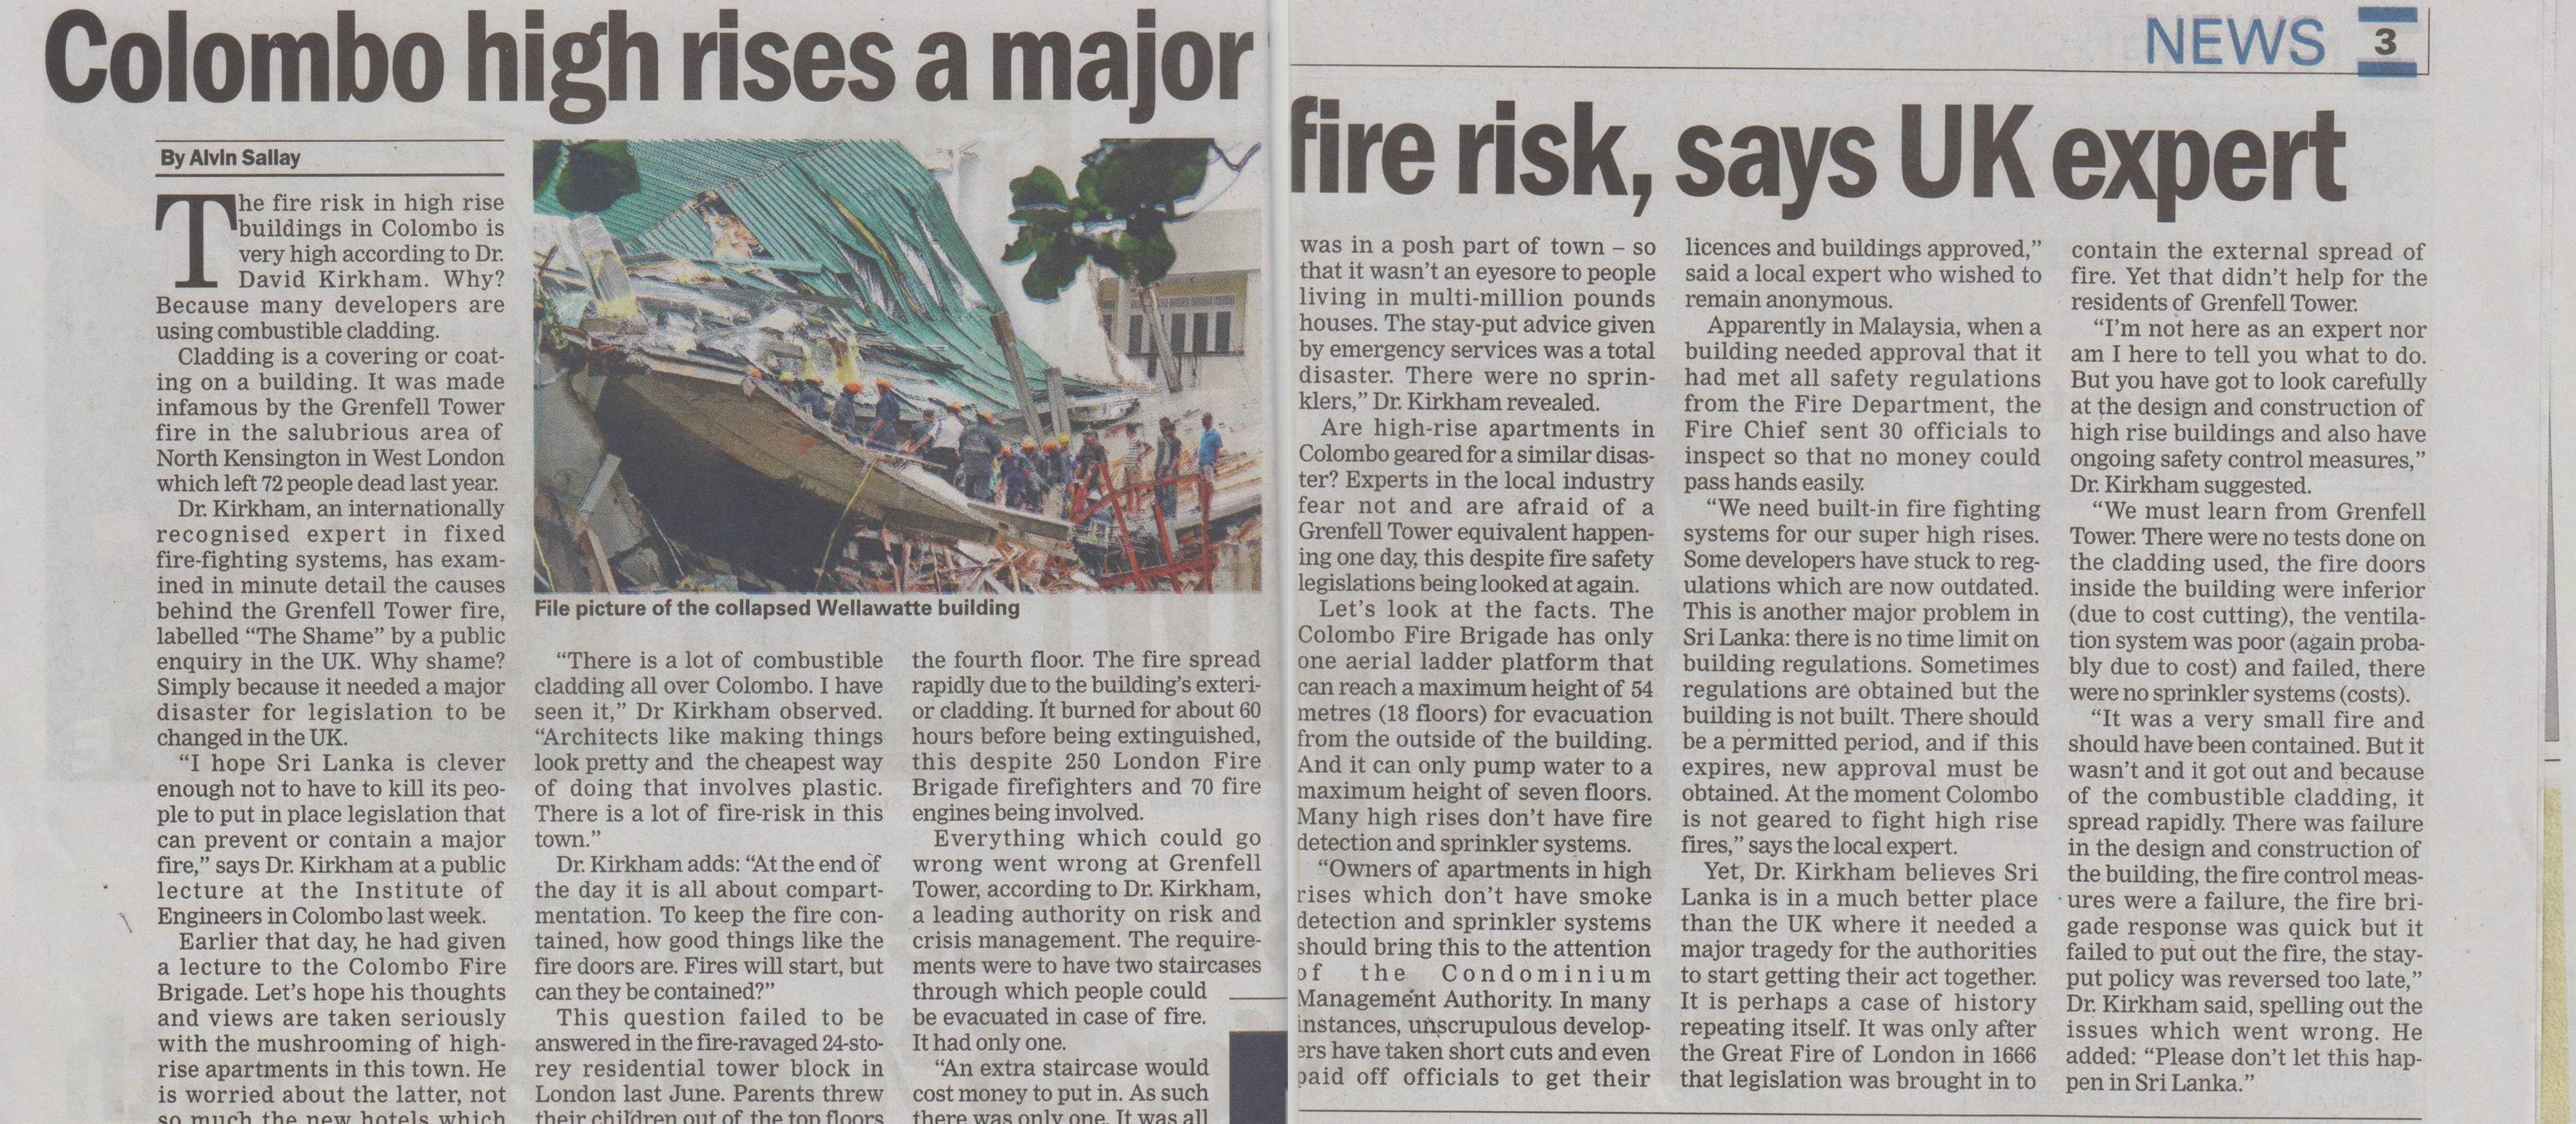 Fire Risk in high rise buildings